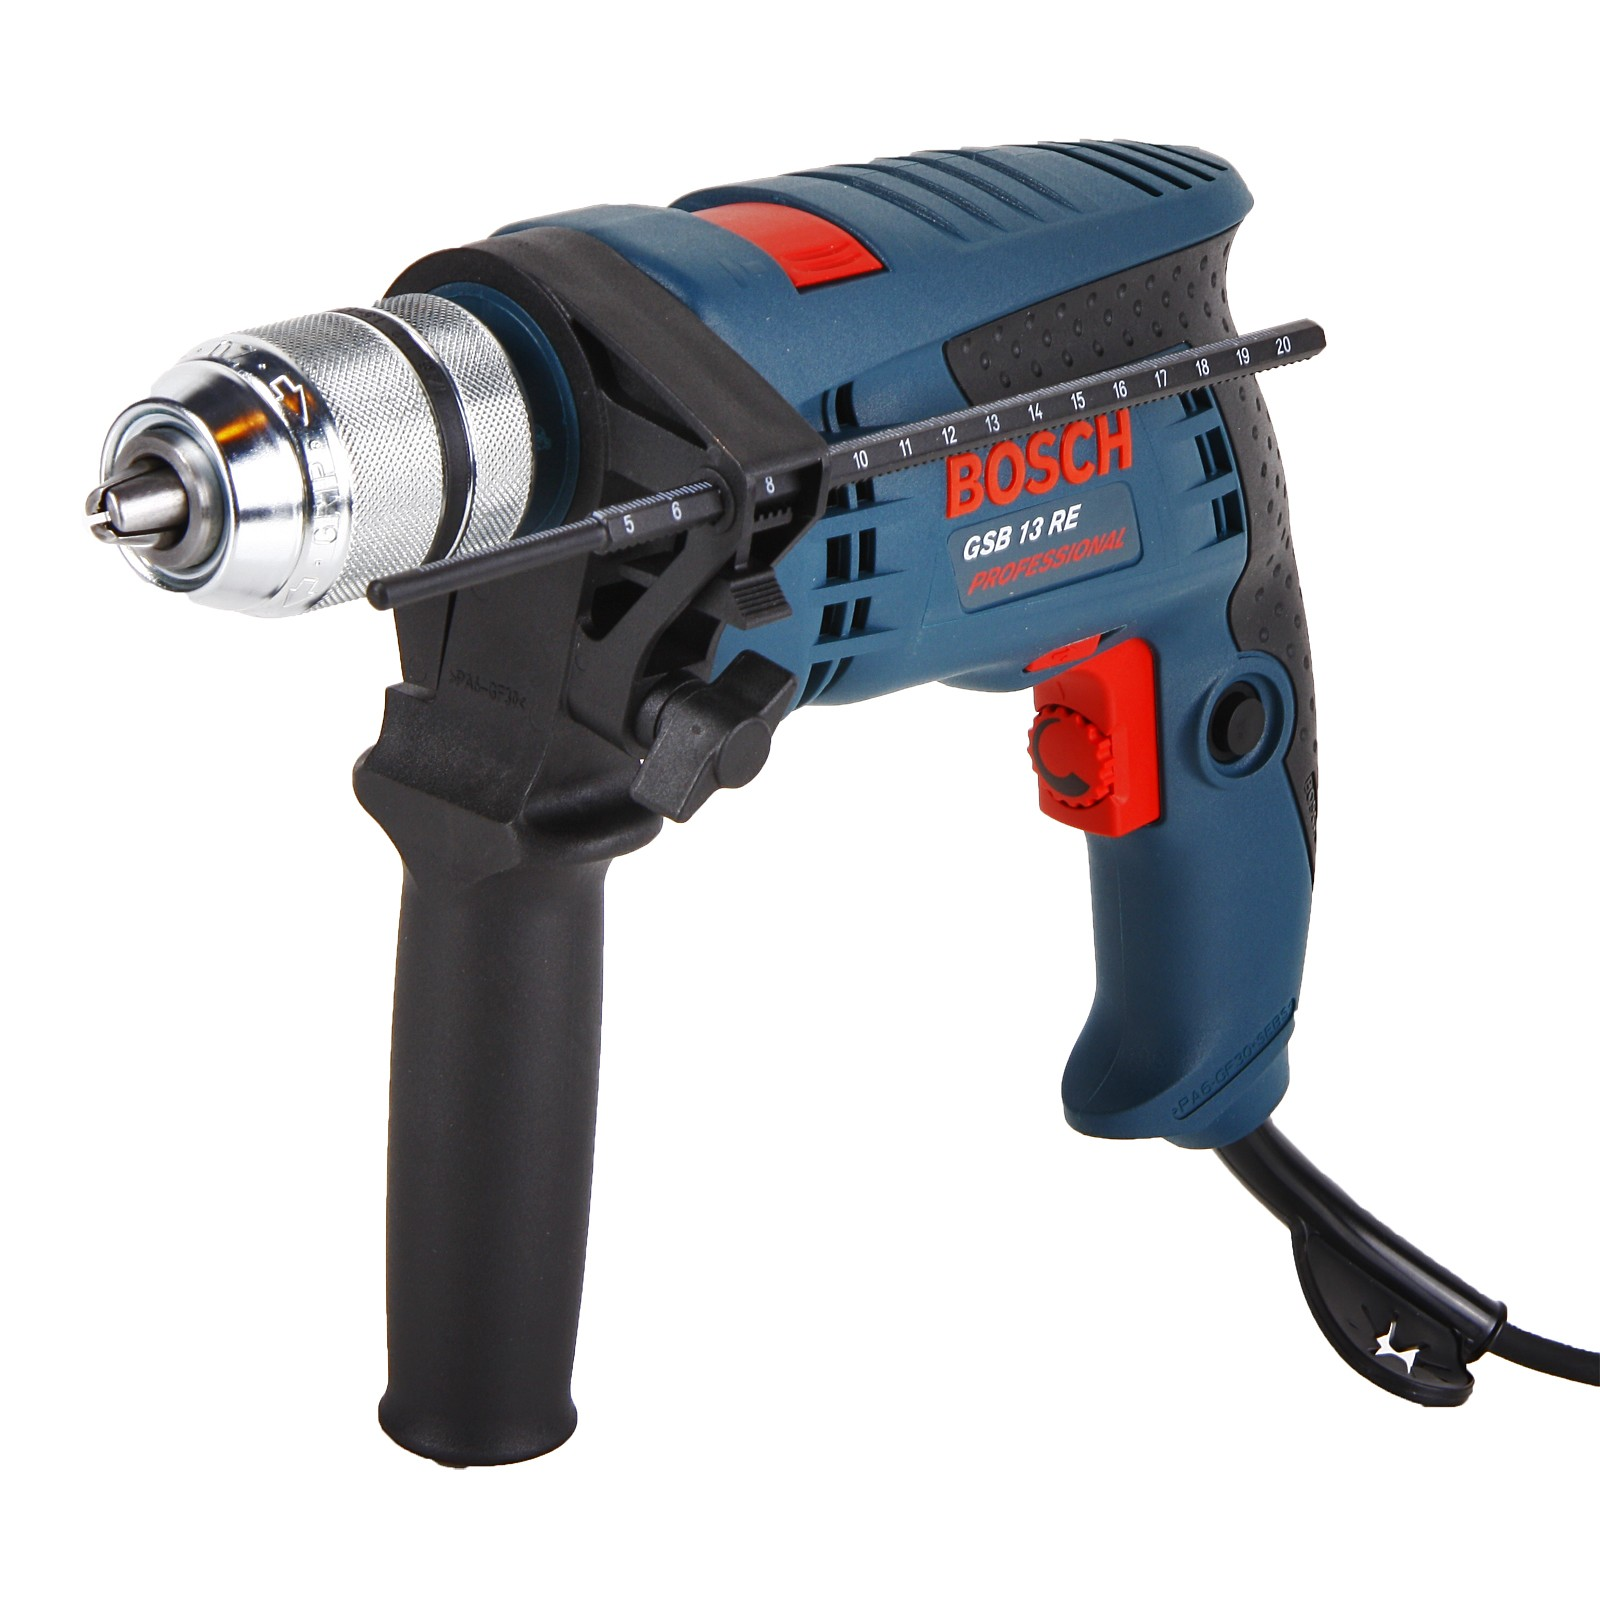 bosch gsb 13 re single speed 600w impact percussion drill in carton powertool world. Black Bedroom Furniture Sets. Home Design Ideas